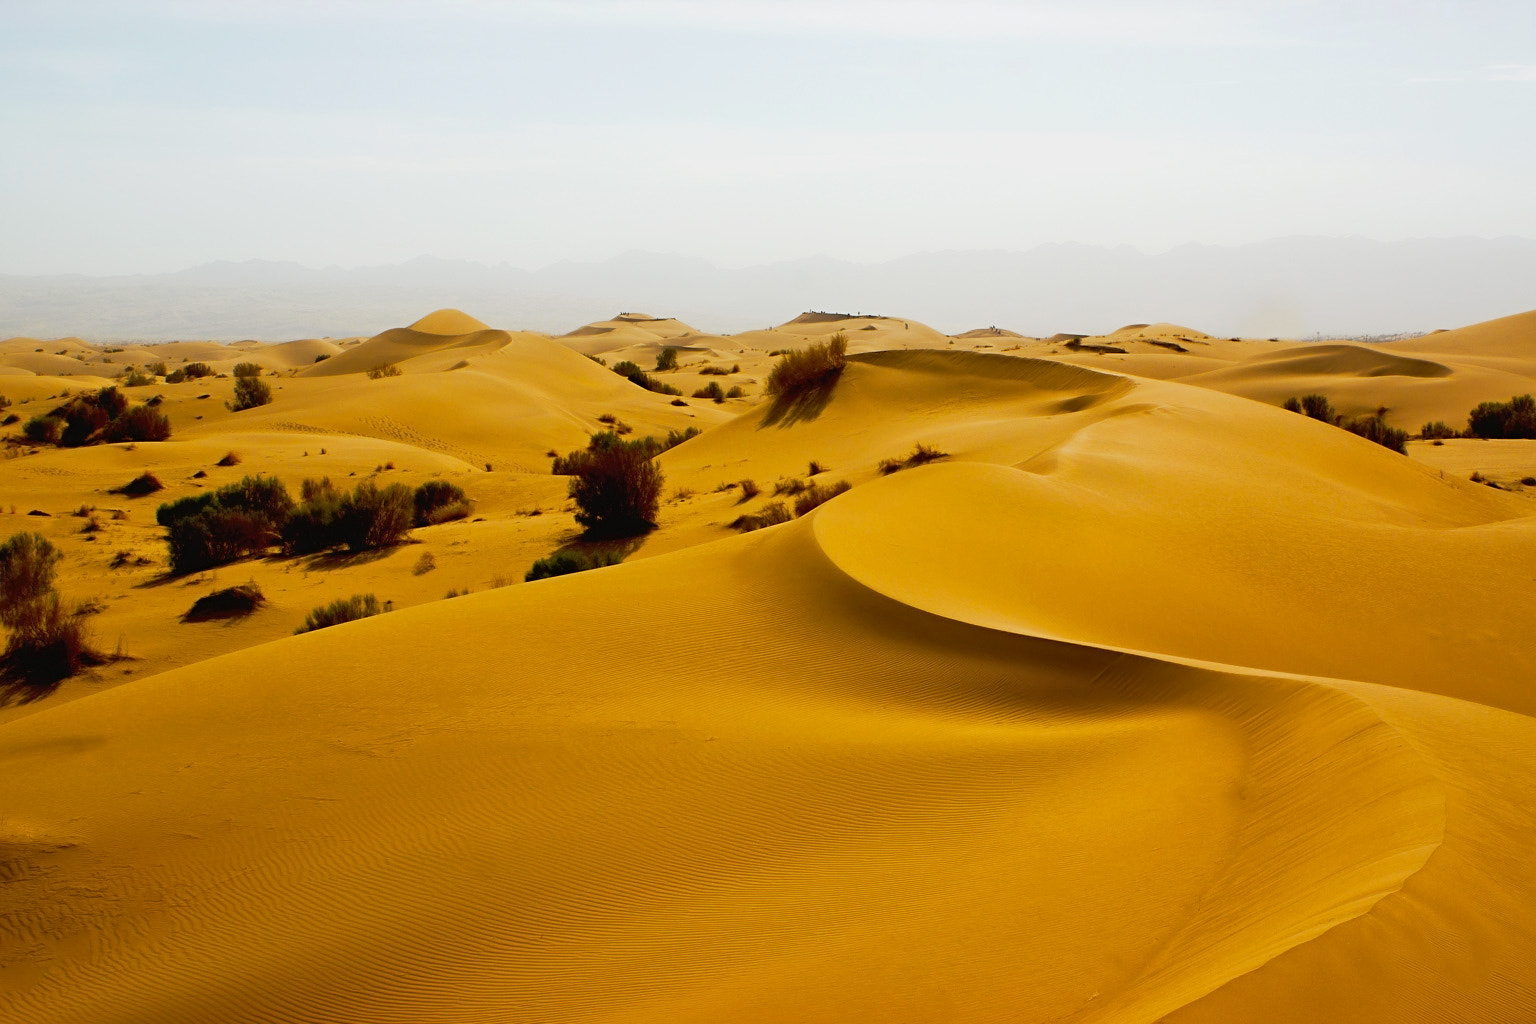 Photograph ~Desert at noon~ by seranza on 500px